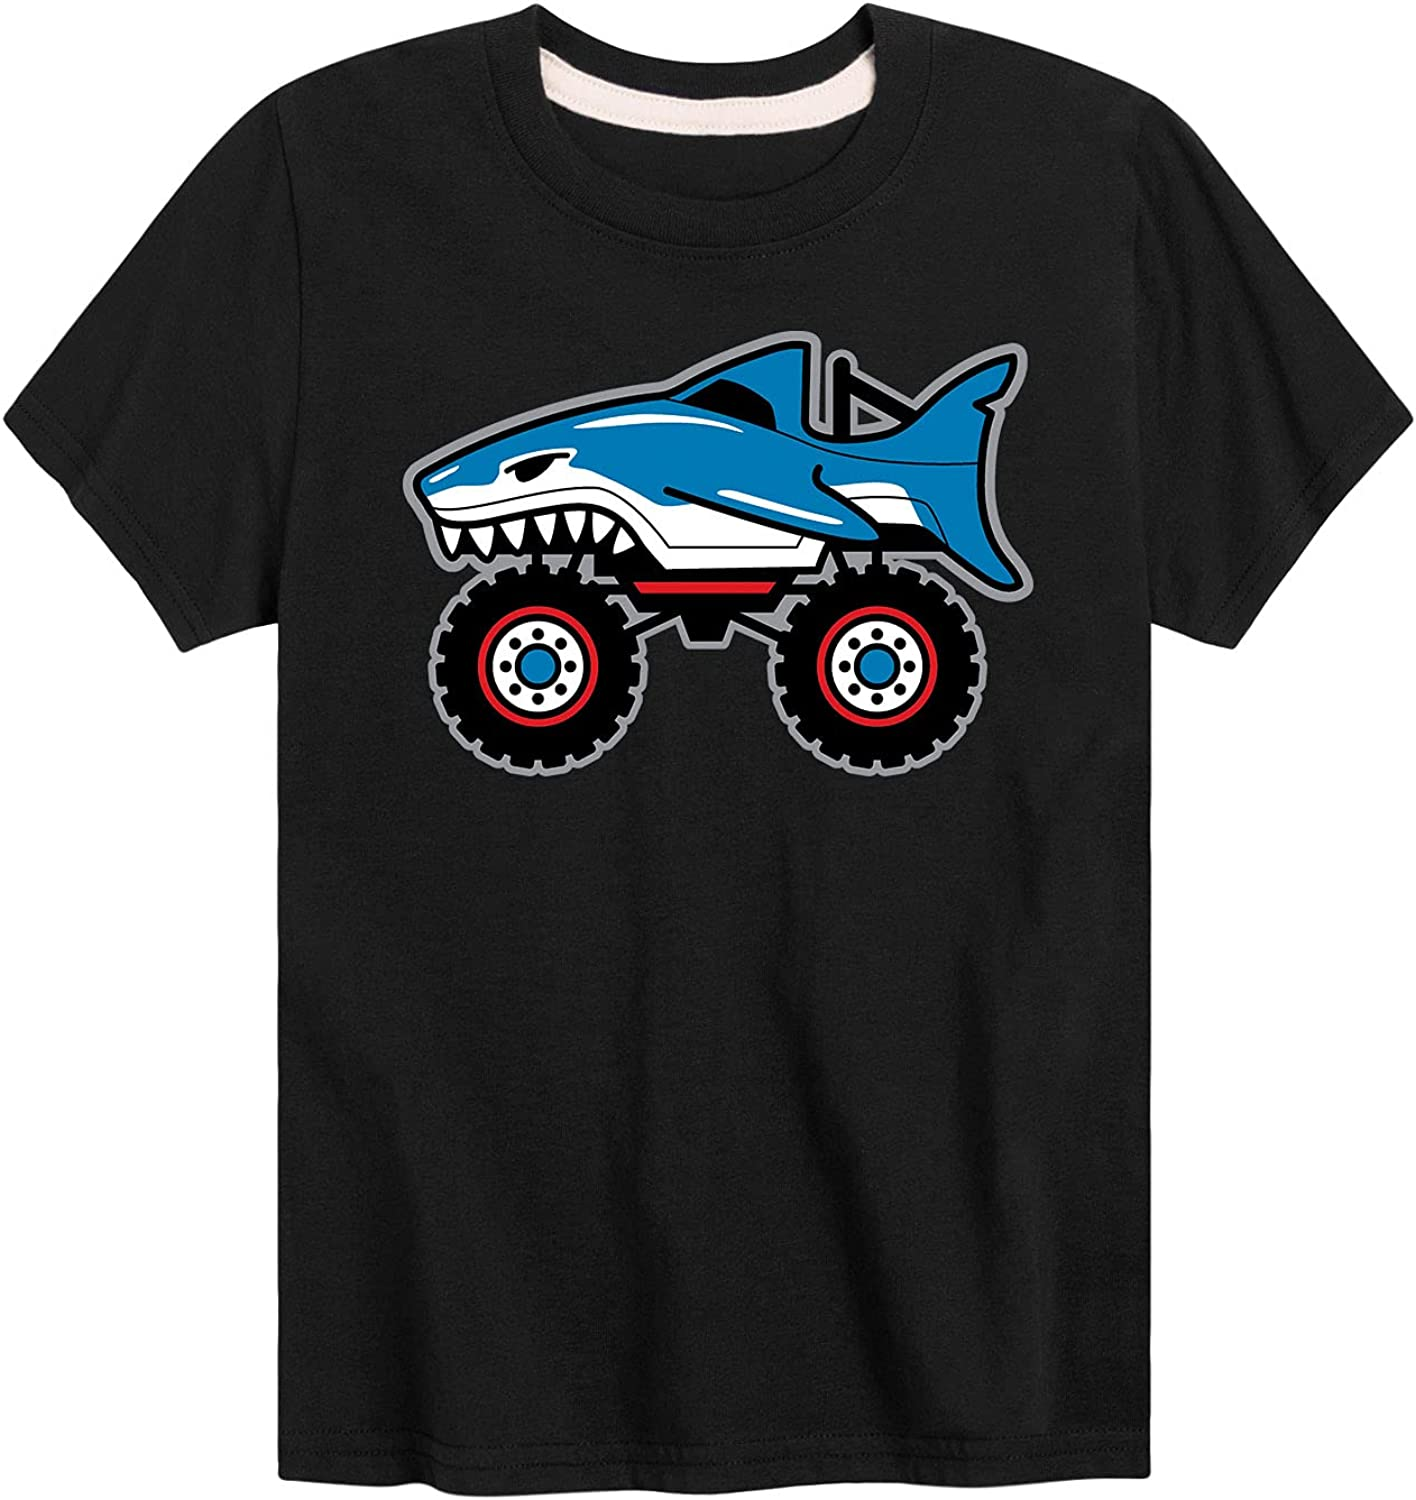 Shark Truck - Toddler and Youth Short Sleeve T-Shirt